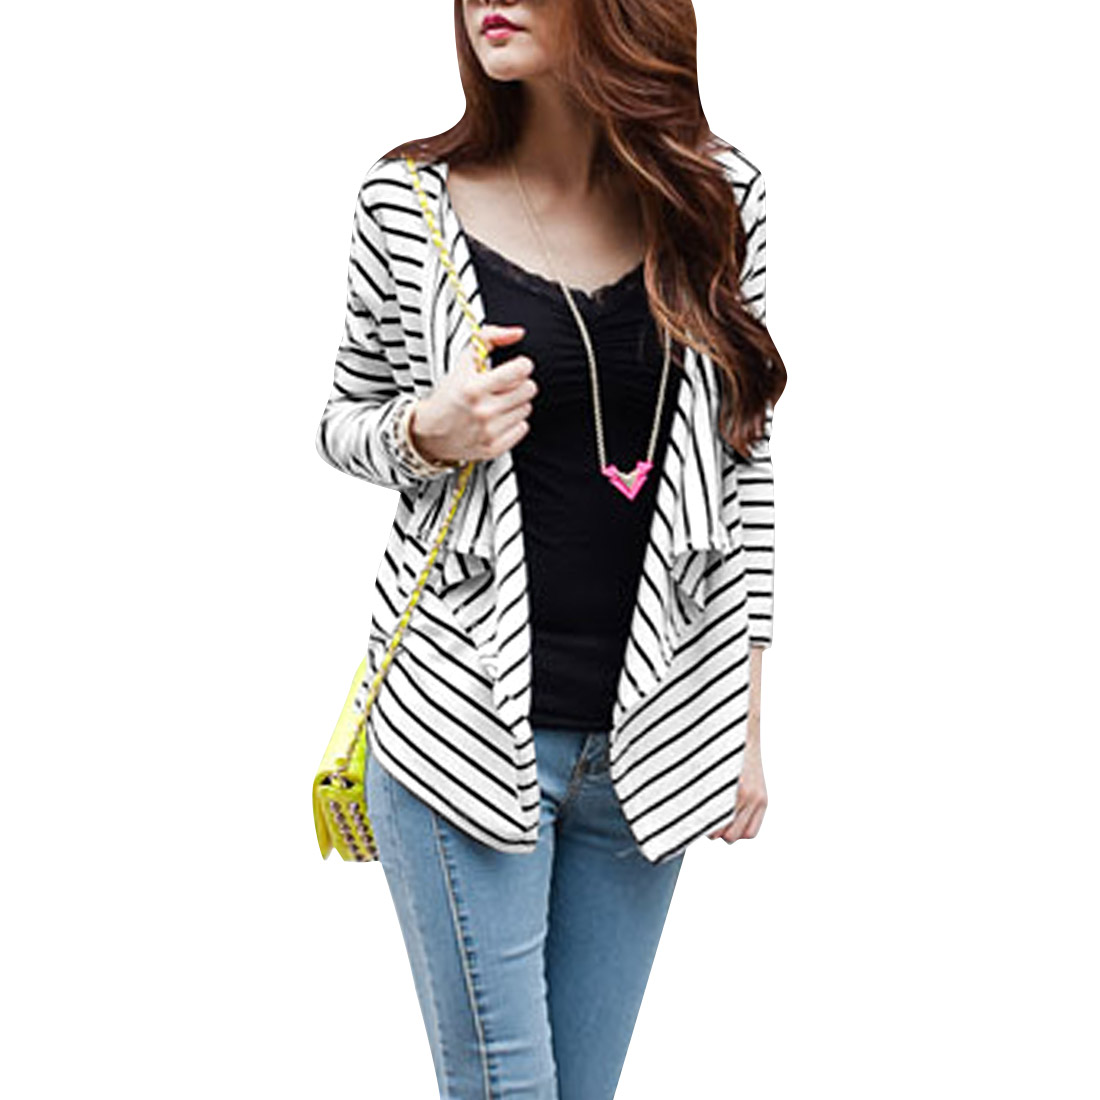 Ladies Long Sleeve Open Front High Low Hem Fashion Black White Srtipes Cardigan S